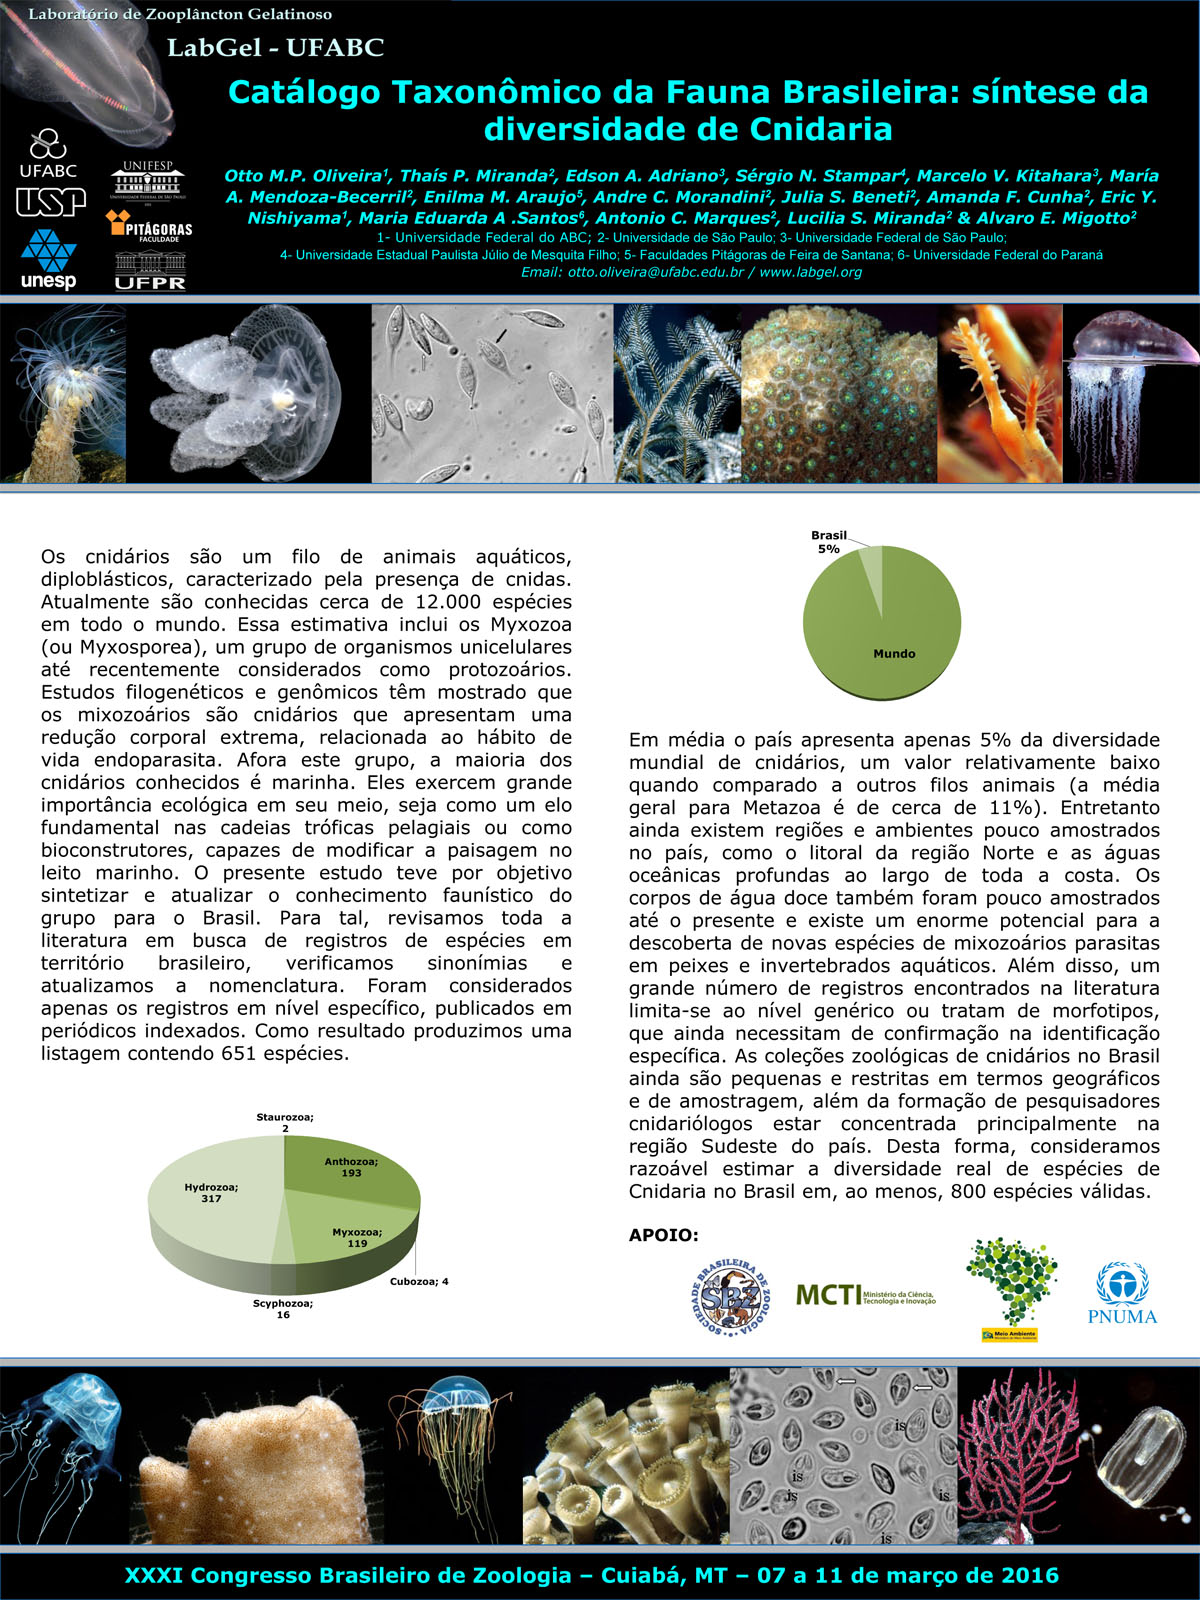 XXXI Brazilian Congress of Zoology